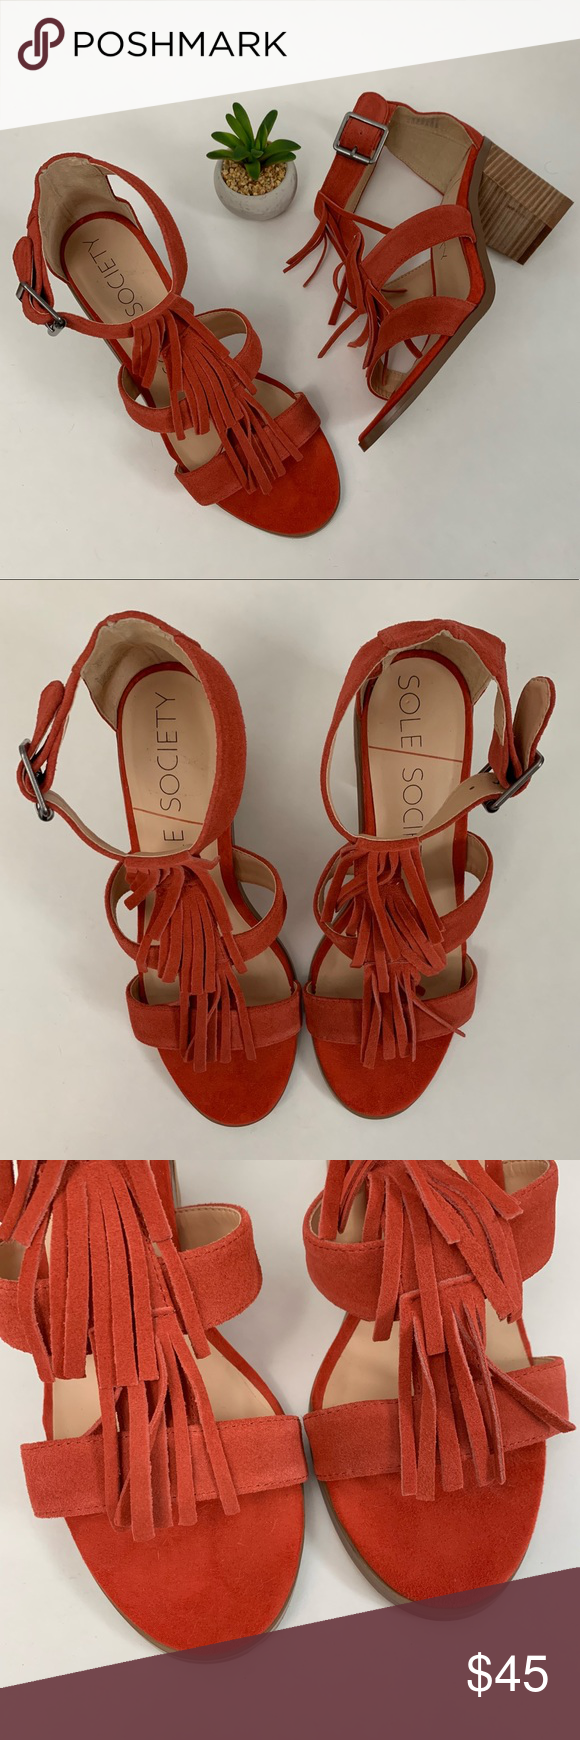 NWOT Paprika Sole Society Delilah Fringed Heels New